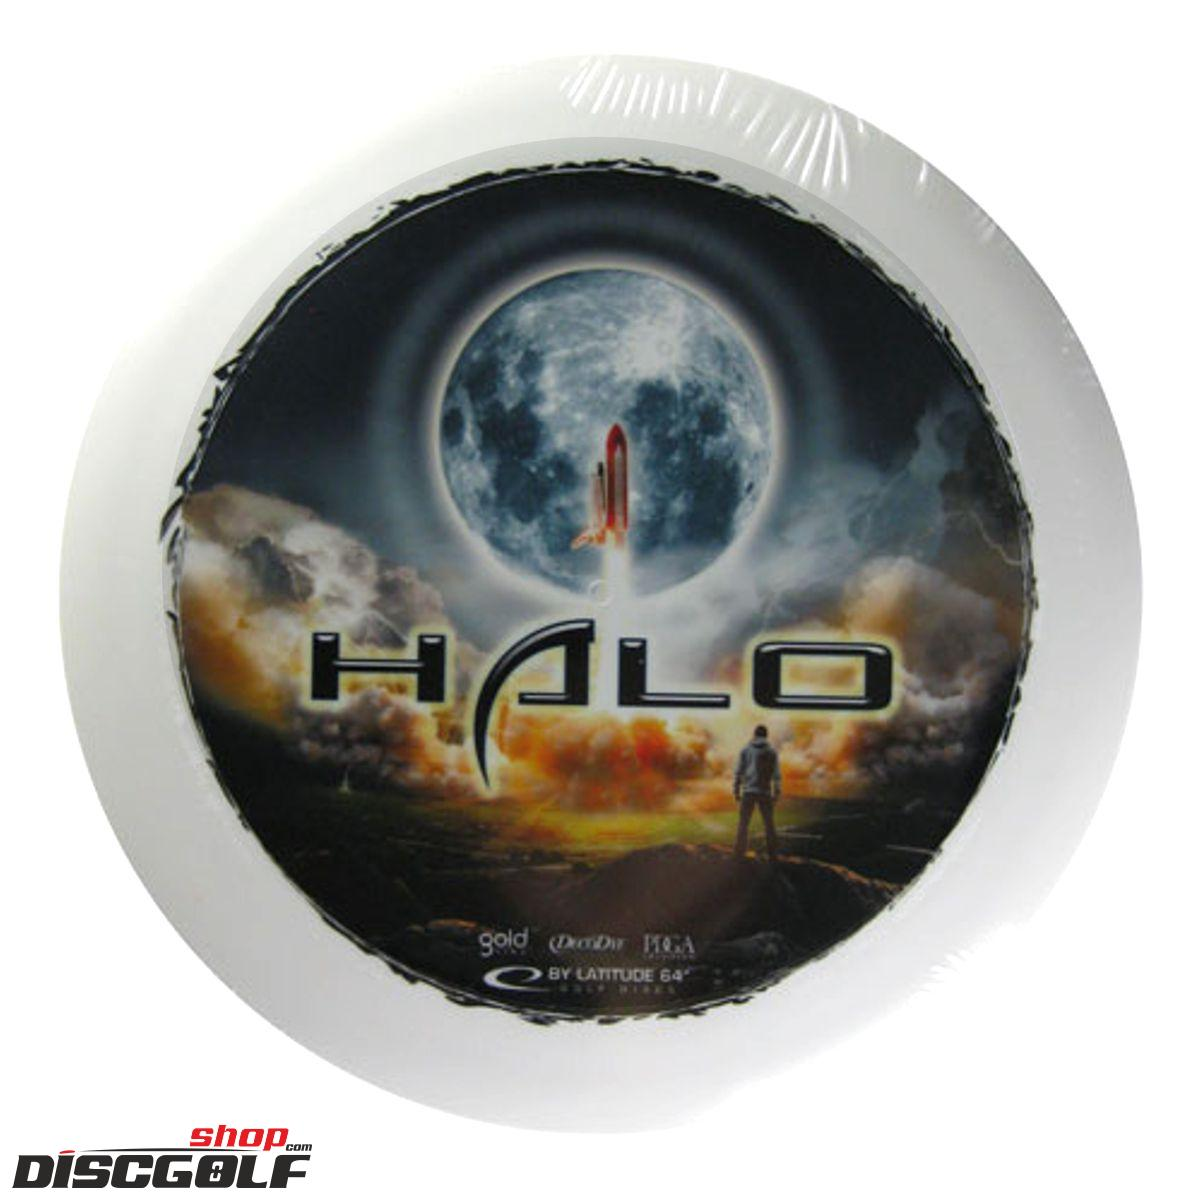 Latitude 64° Halo Gold Decodye